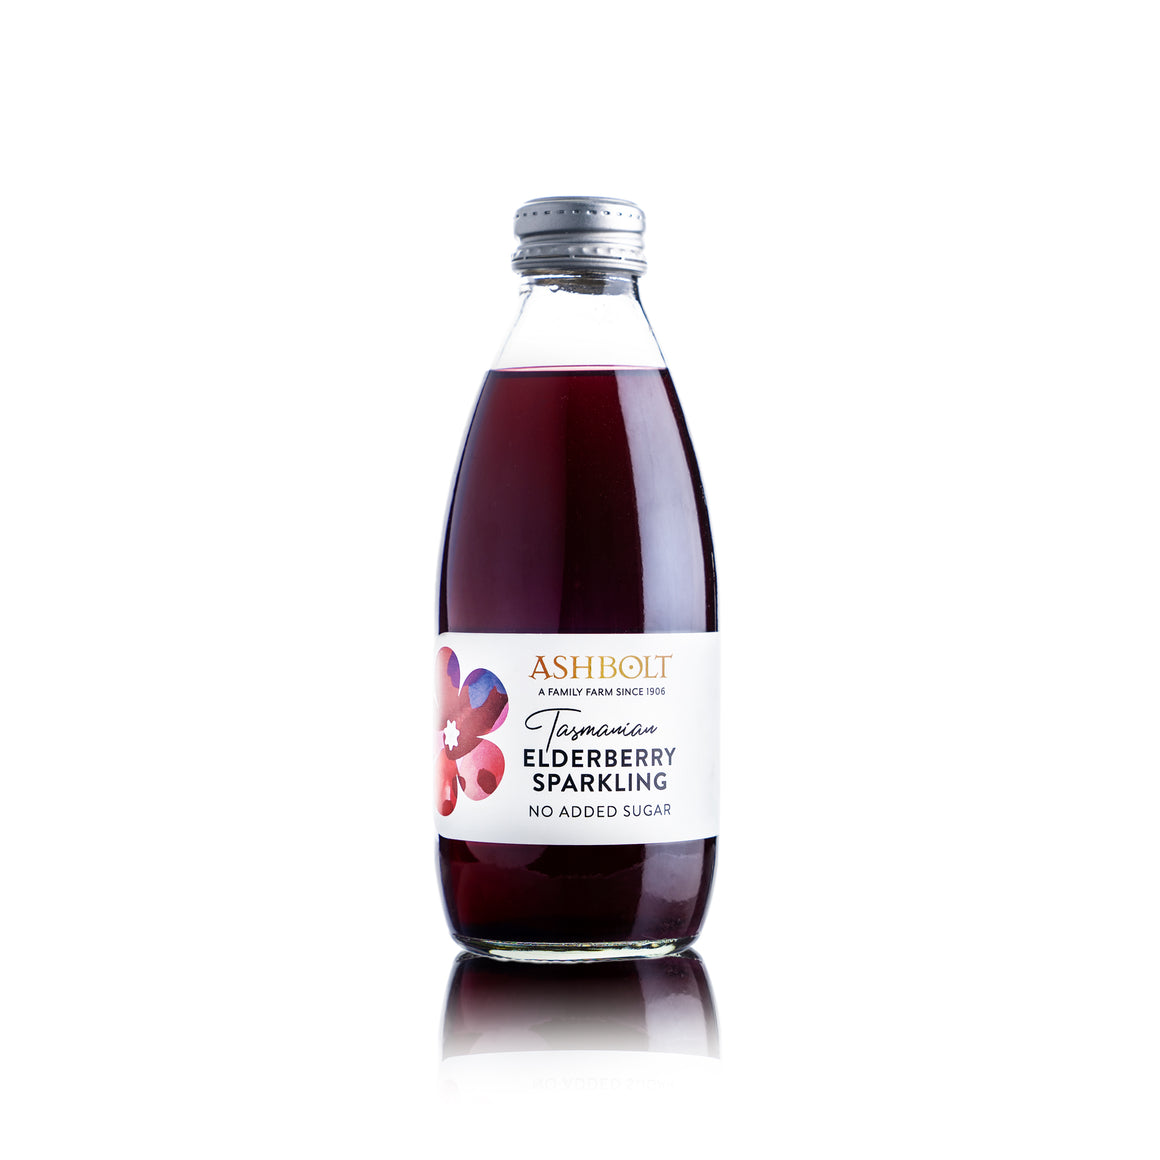 Elderberry Sparking no added sugar in a bottle by Ashbolt